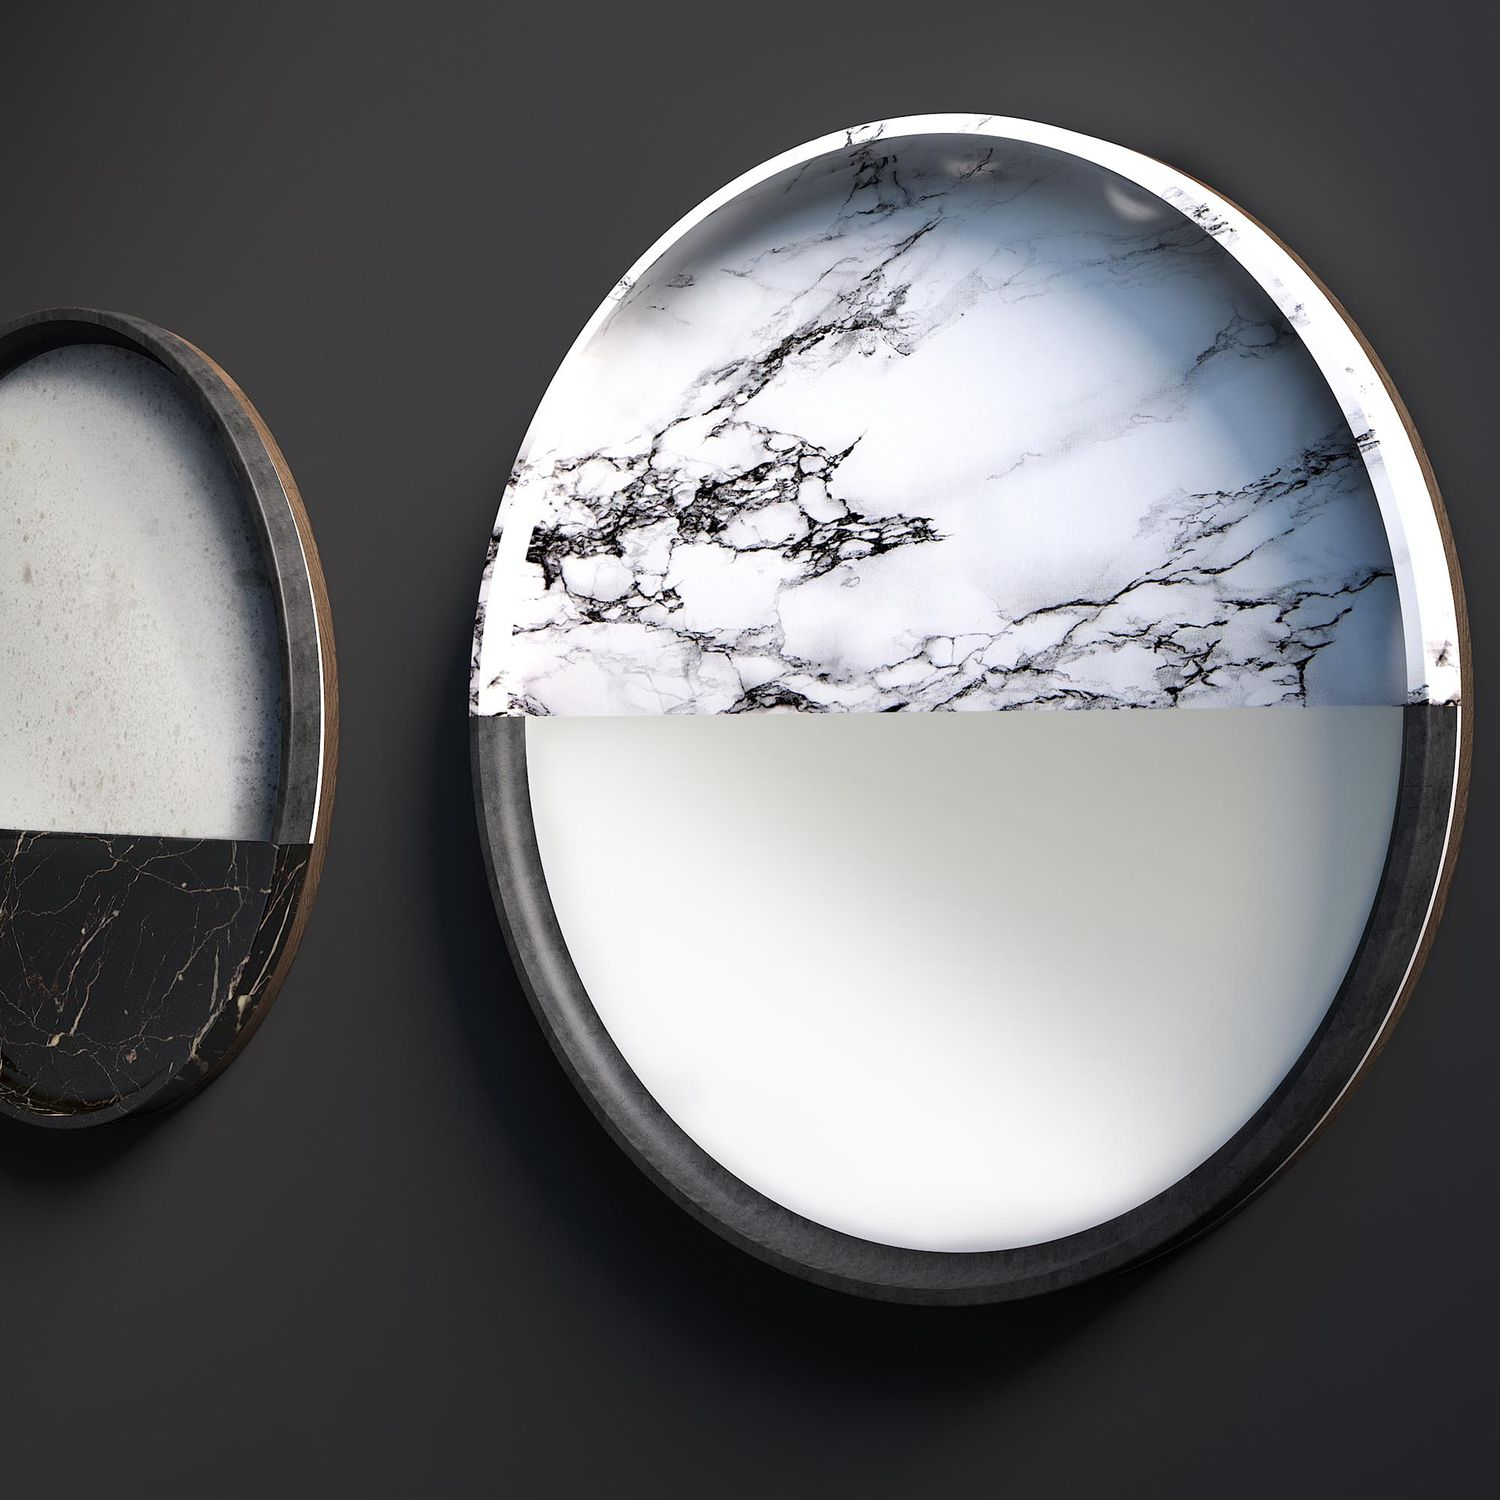 Wall Mounted Mirror Vanity Rossato Srl Contemporary Round Marble